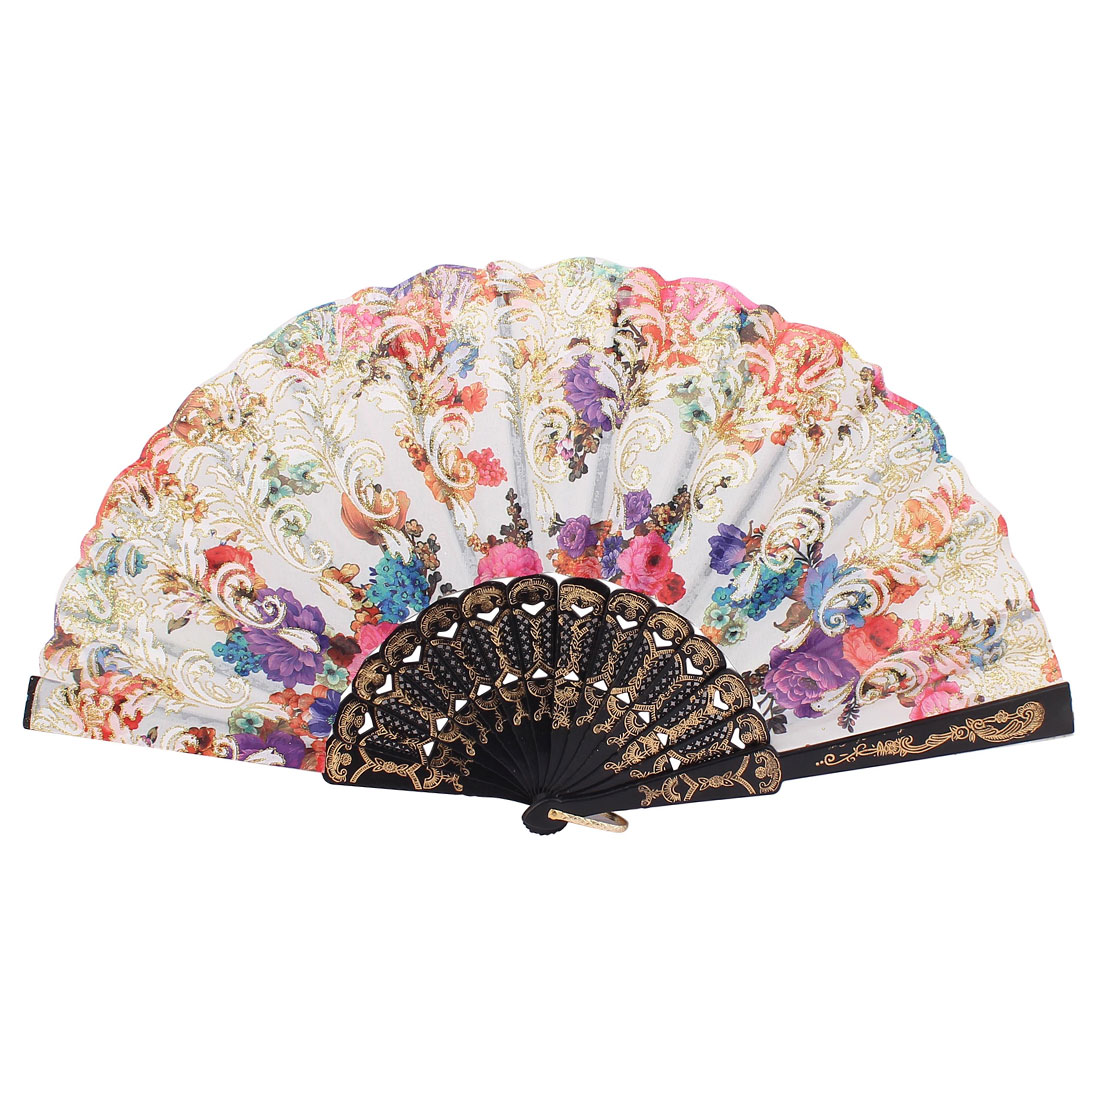 Black Frame Flowers Pattern Dancing Wedding Party Fabric Folding Hand Fan